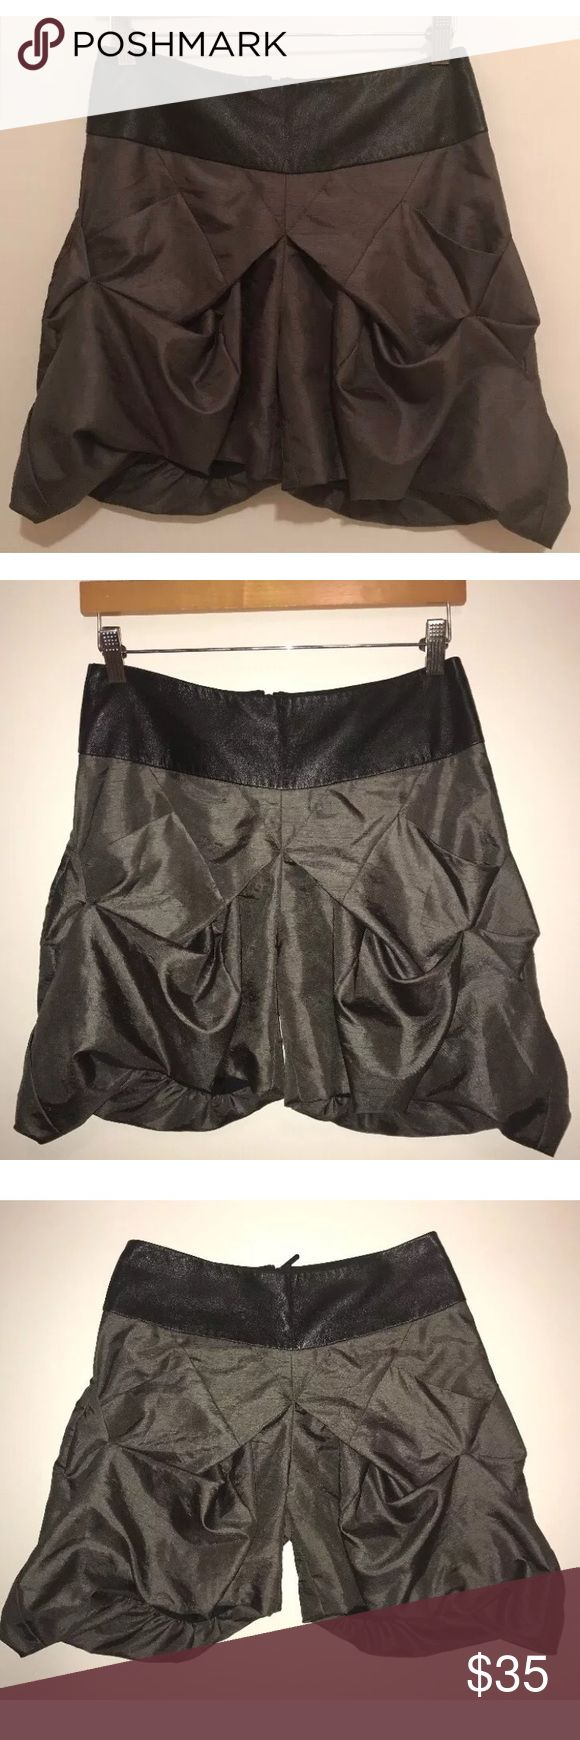 """Sally Phillips Blouson Shorts Faux Leather Waist Sally Phillips -Adelaide Fashion Designer Gray Blouson Shorts with Black Faux leather Waistband Sz. 6 EUC So Chic. No stains, tears, rips or holes. (No Trades)  Waist side to side 14""""  Length (top back waist to bottom) 17""""  Be sure to check out my other items! Sally Phillips Shorts"""